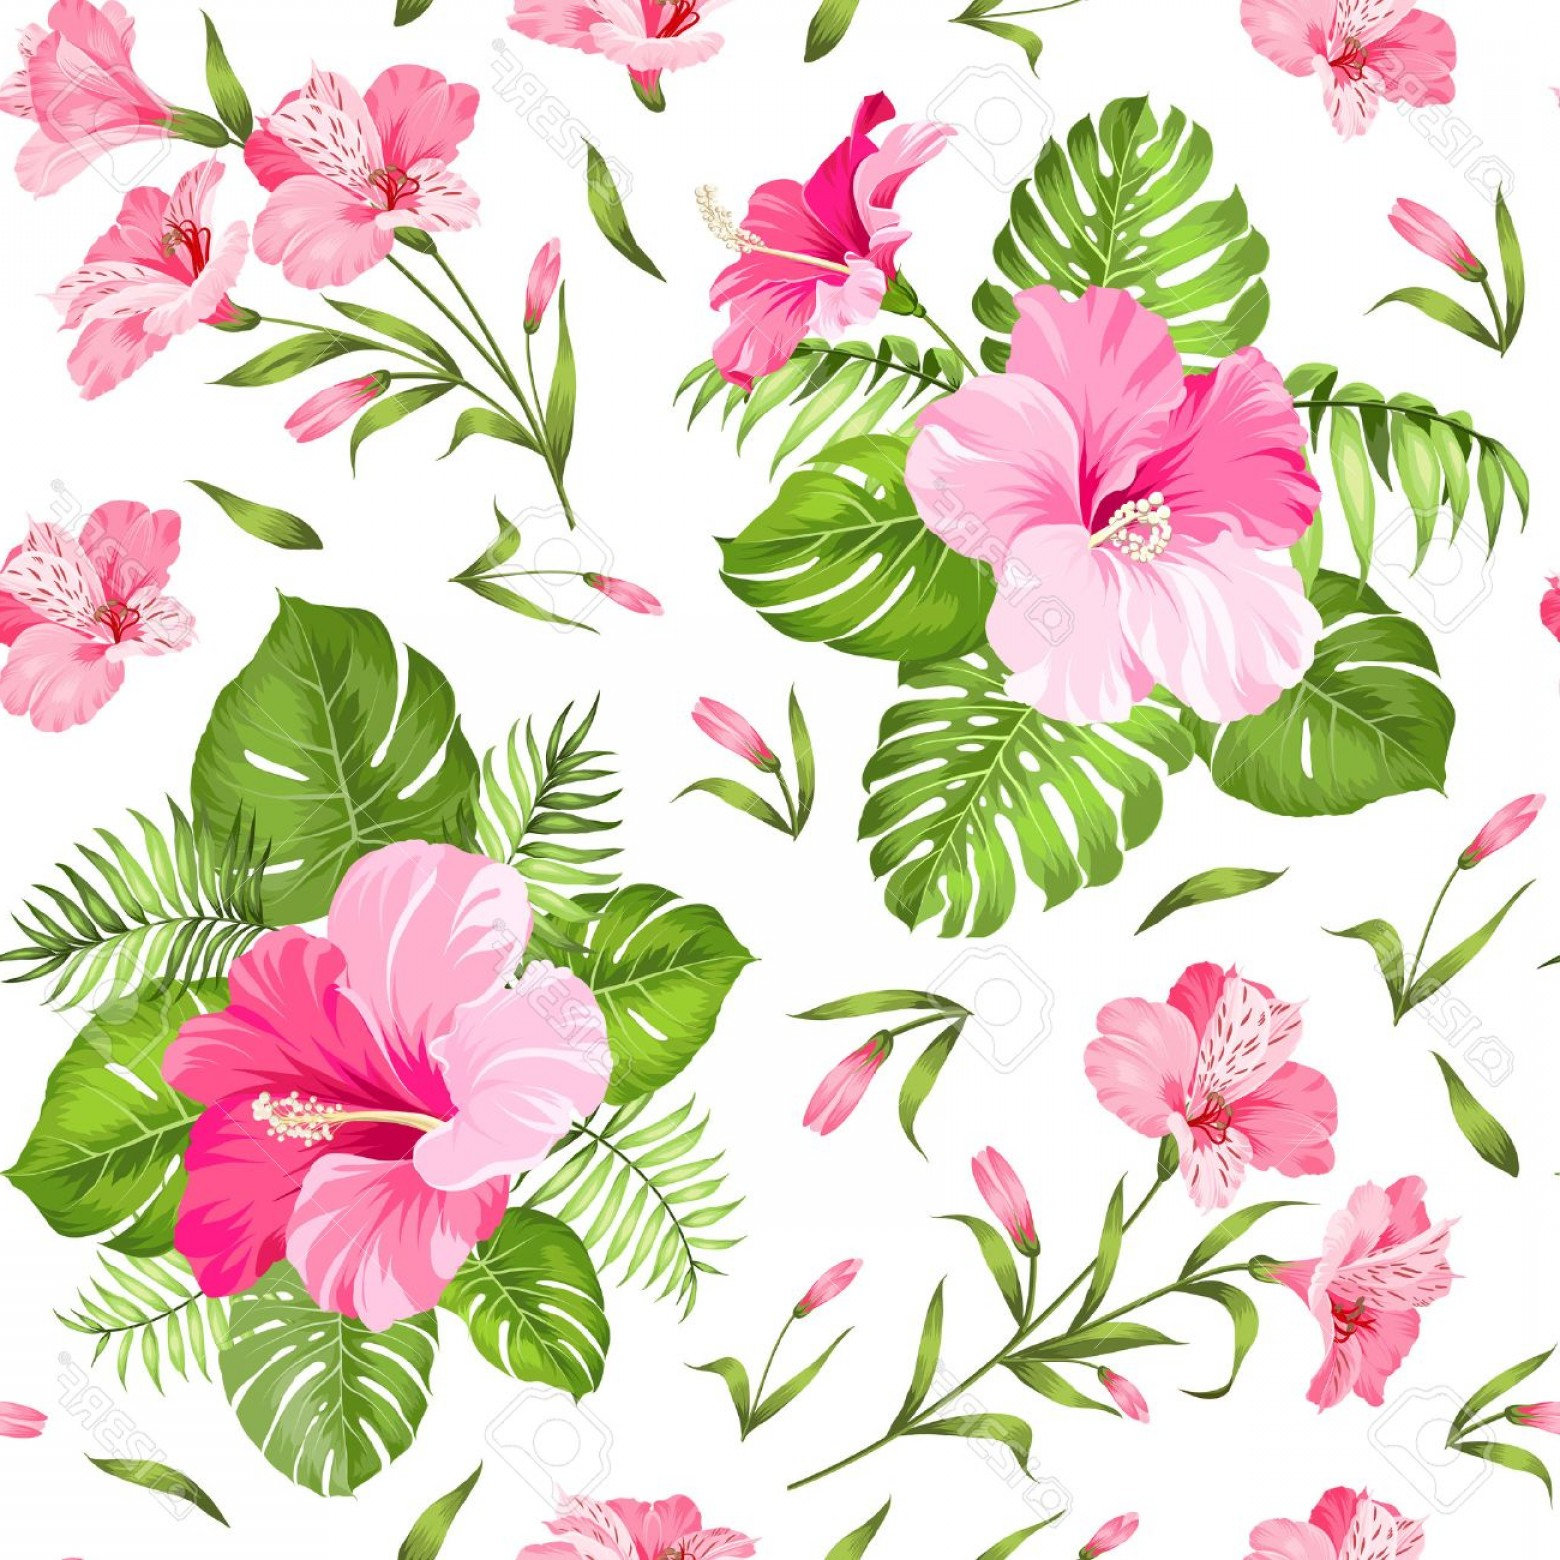 Hawaiian Flower Seamless Vector Pattern: Pretty Photostock Vector Seamless Tropical Flower Blossom Flowers Seamless Pattern Background Vector Illustration